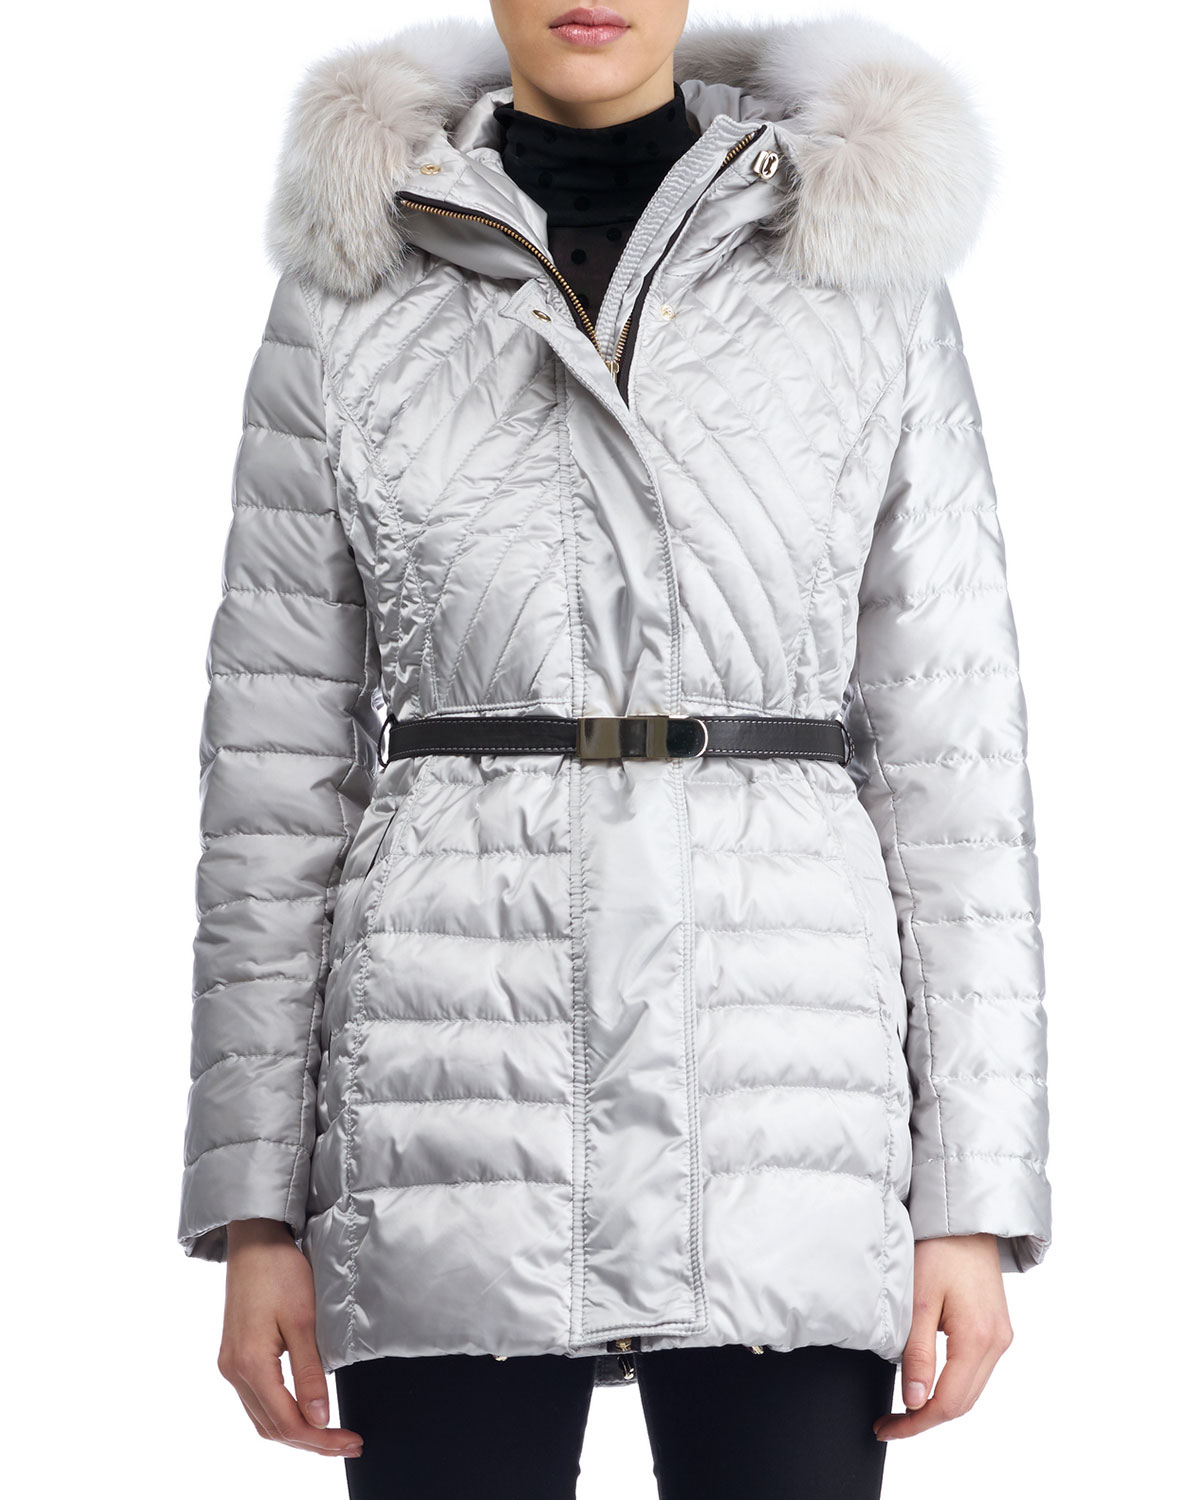 GORSKI APRES-SKI HOODED QUILTED PUFFER JACKET WITH FOX FUR TRIM